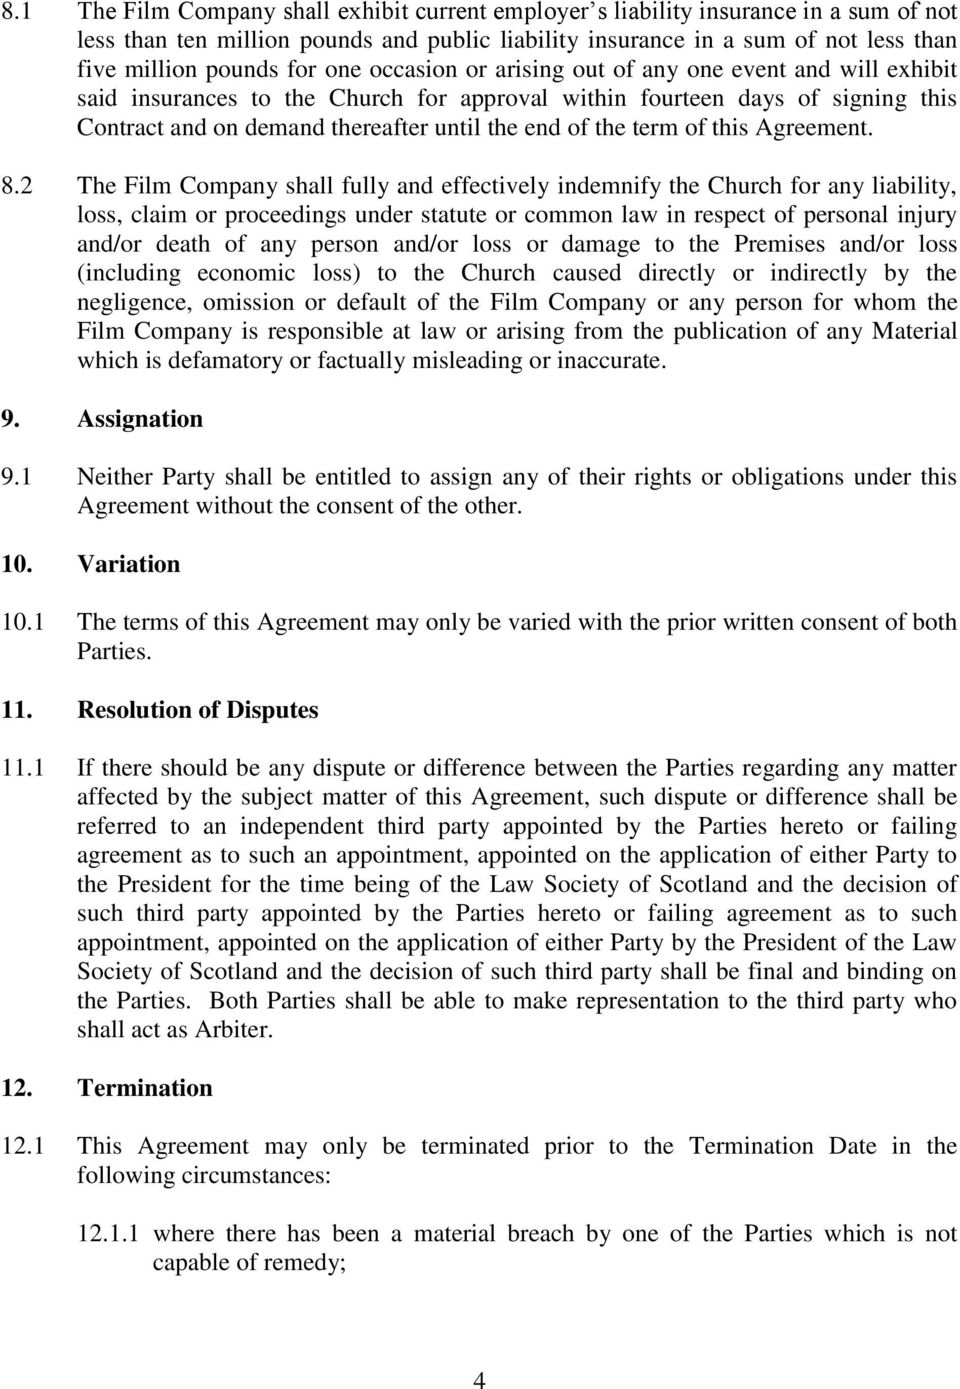 term of this Agreement. 8.